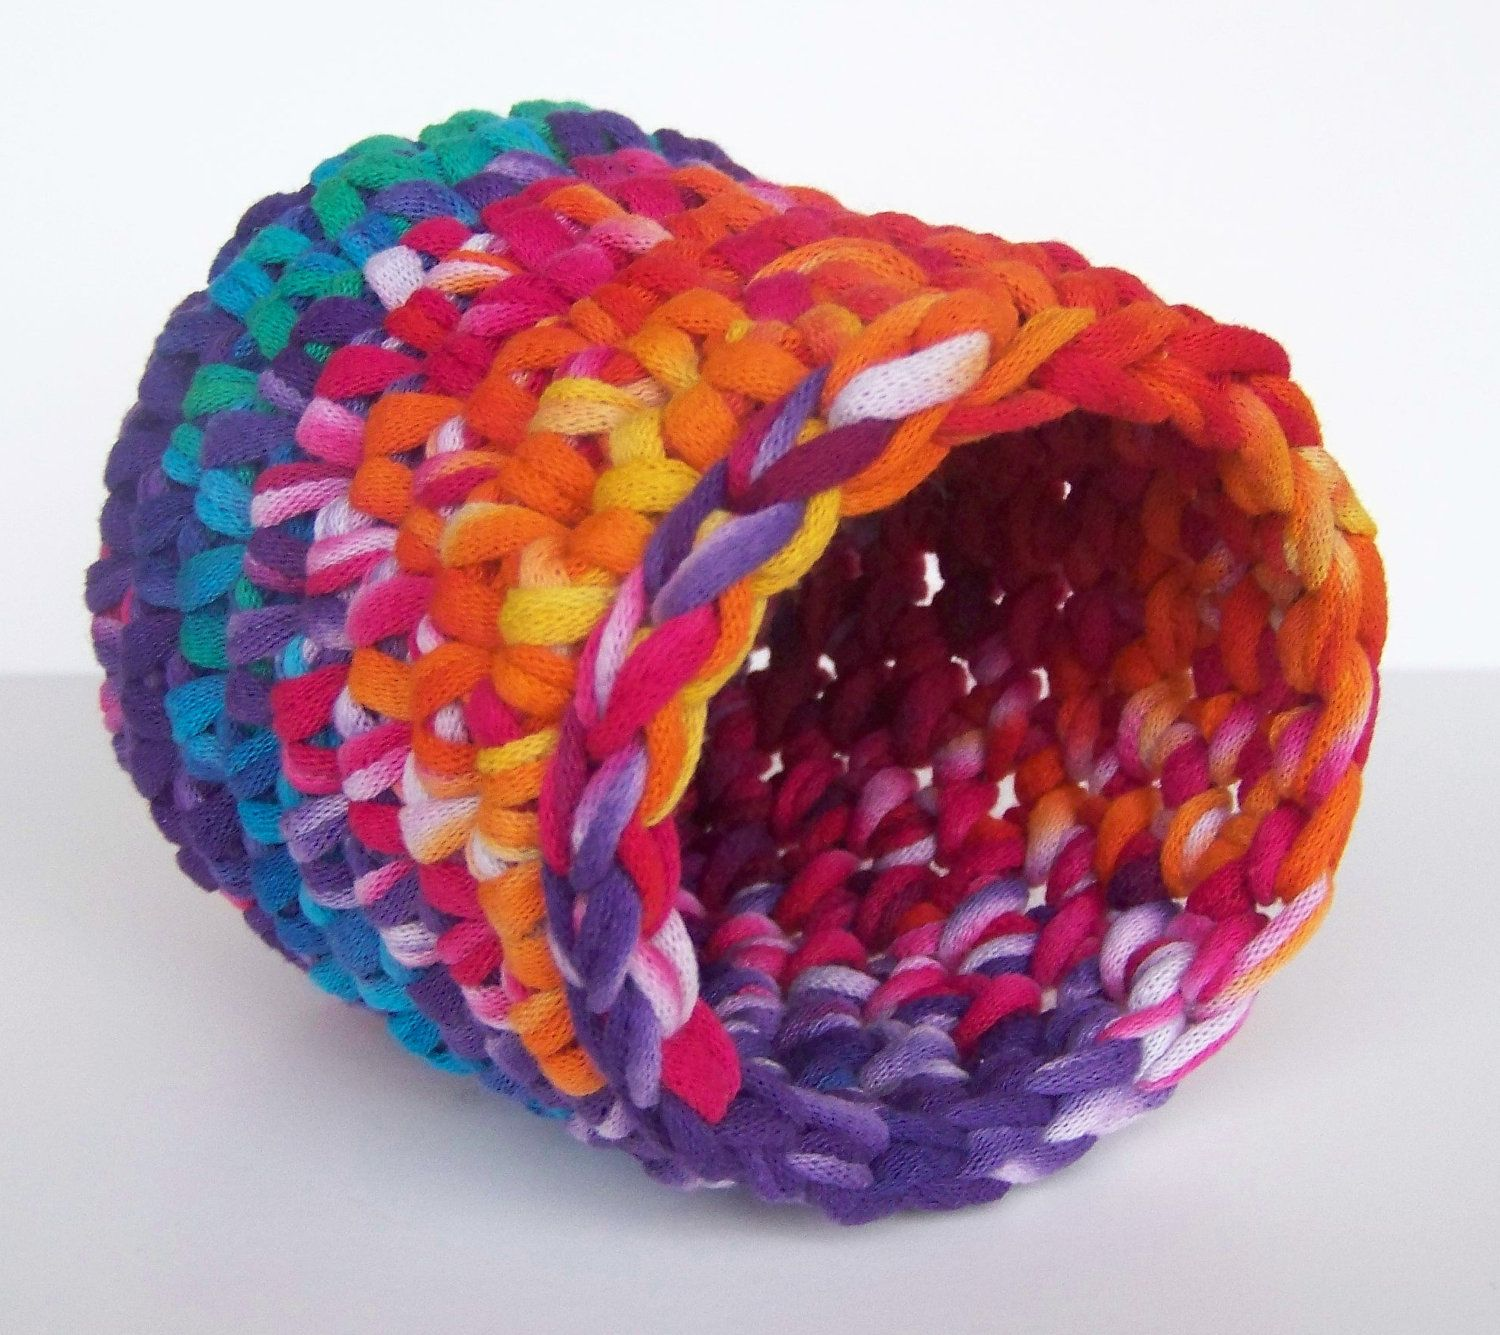 Crochet Bowlpencil Holder Made Using Recycled T Shirt Yarn, Tshirt Yarn,